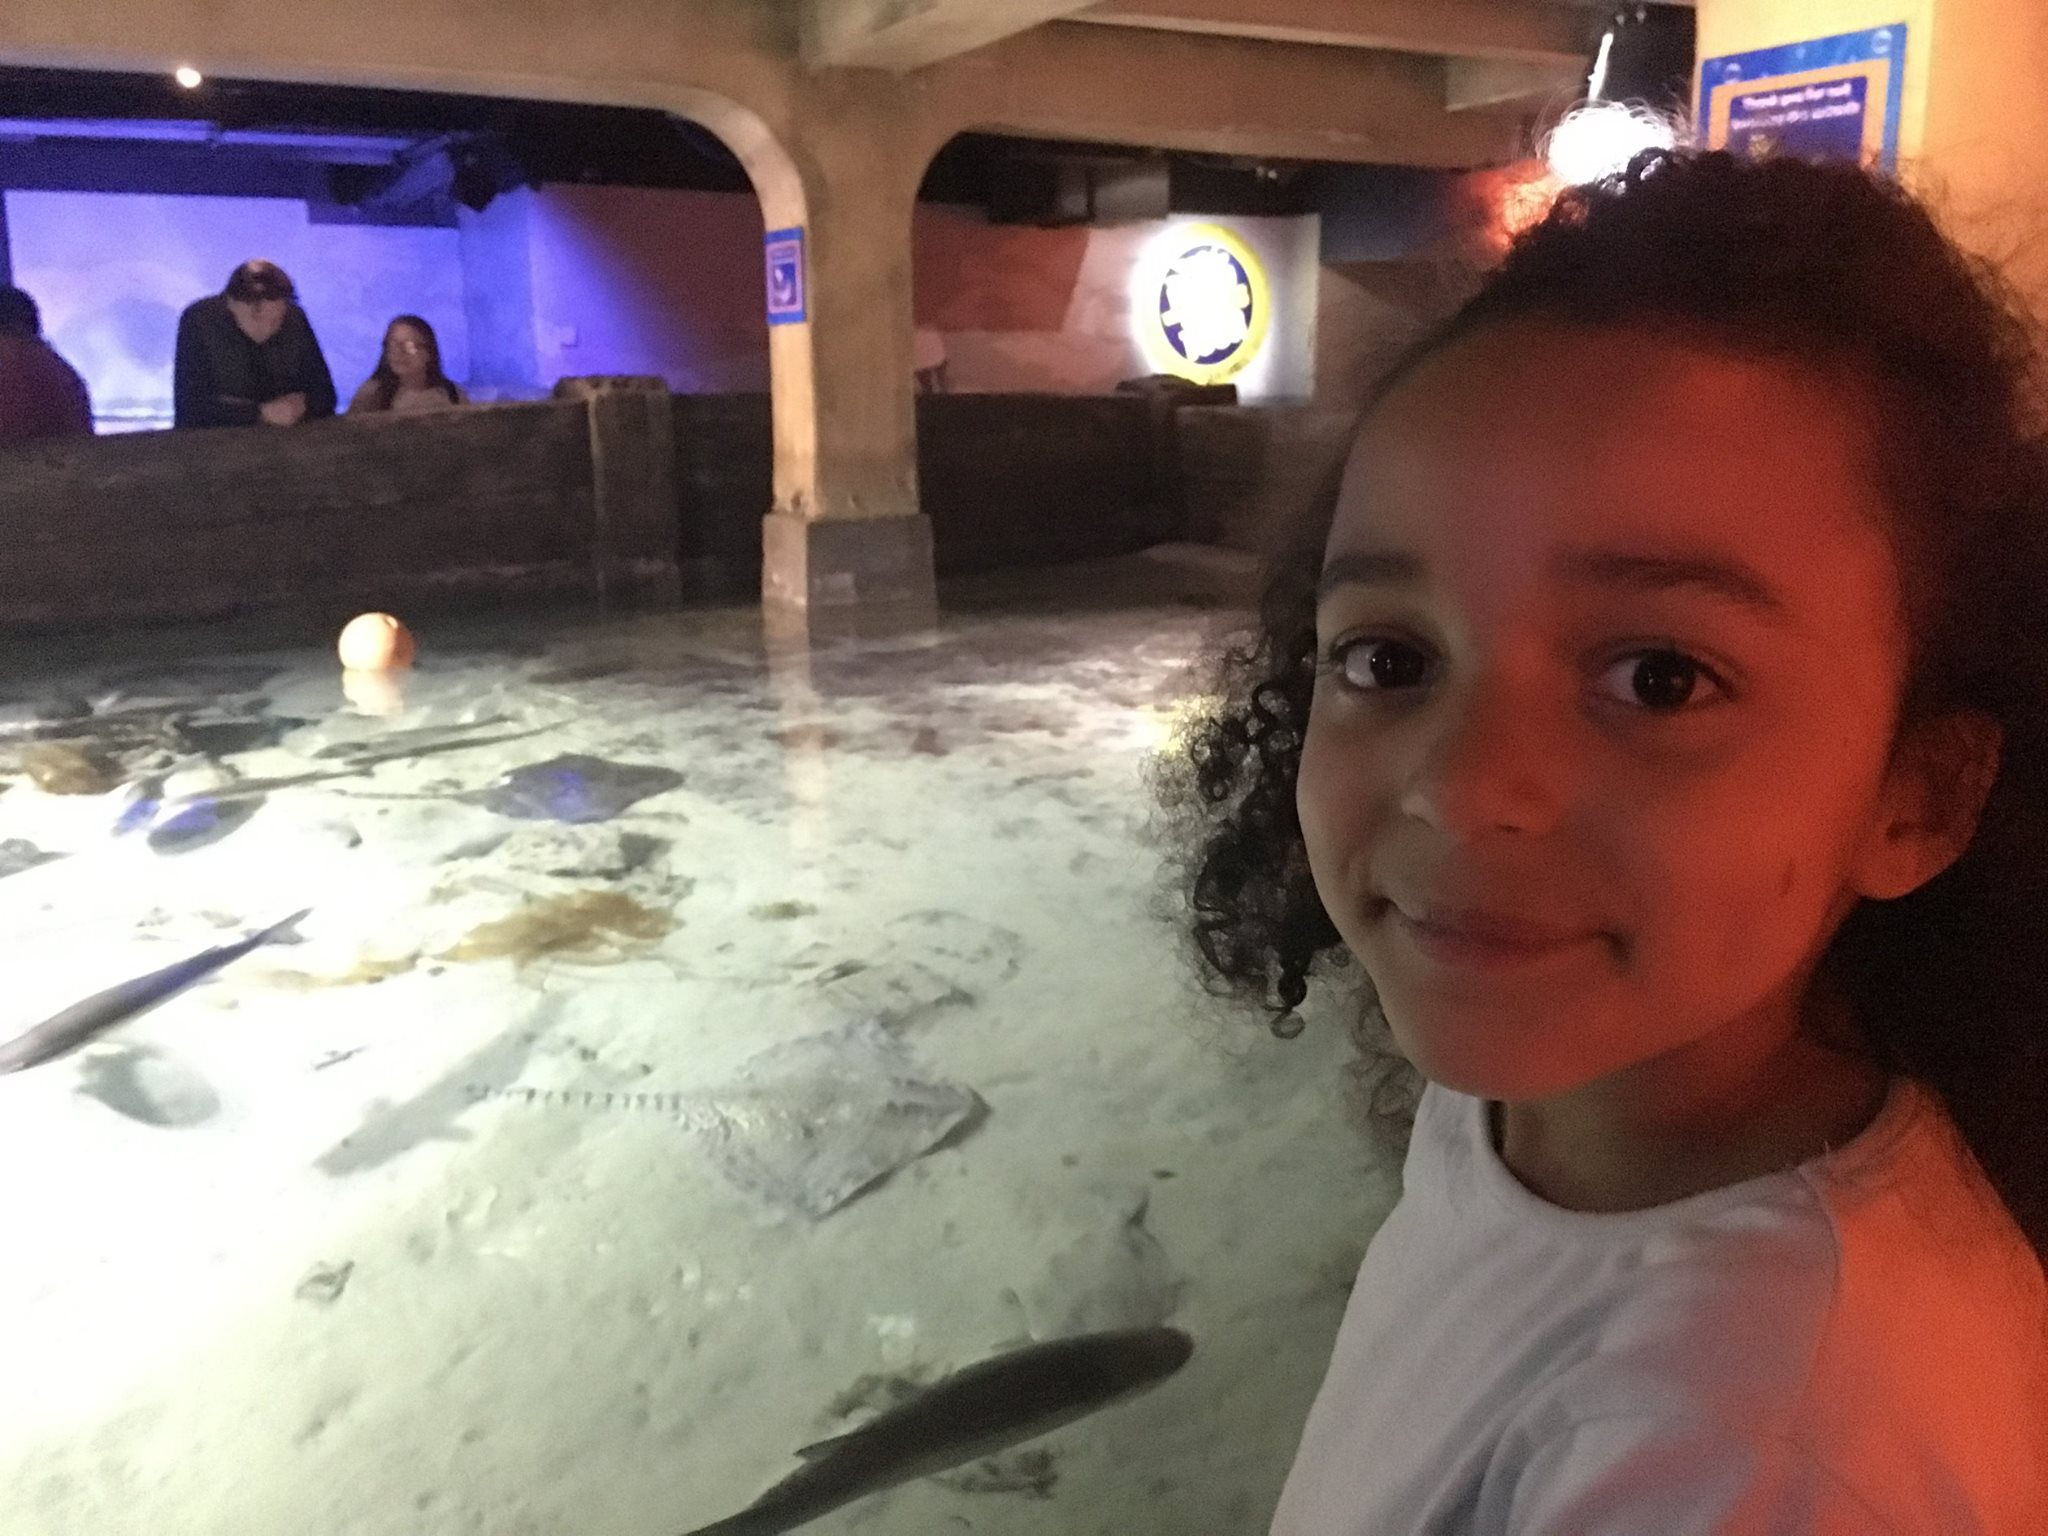 Last night my daughter made me cry